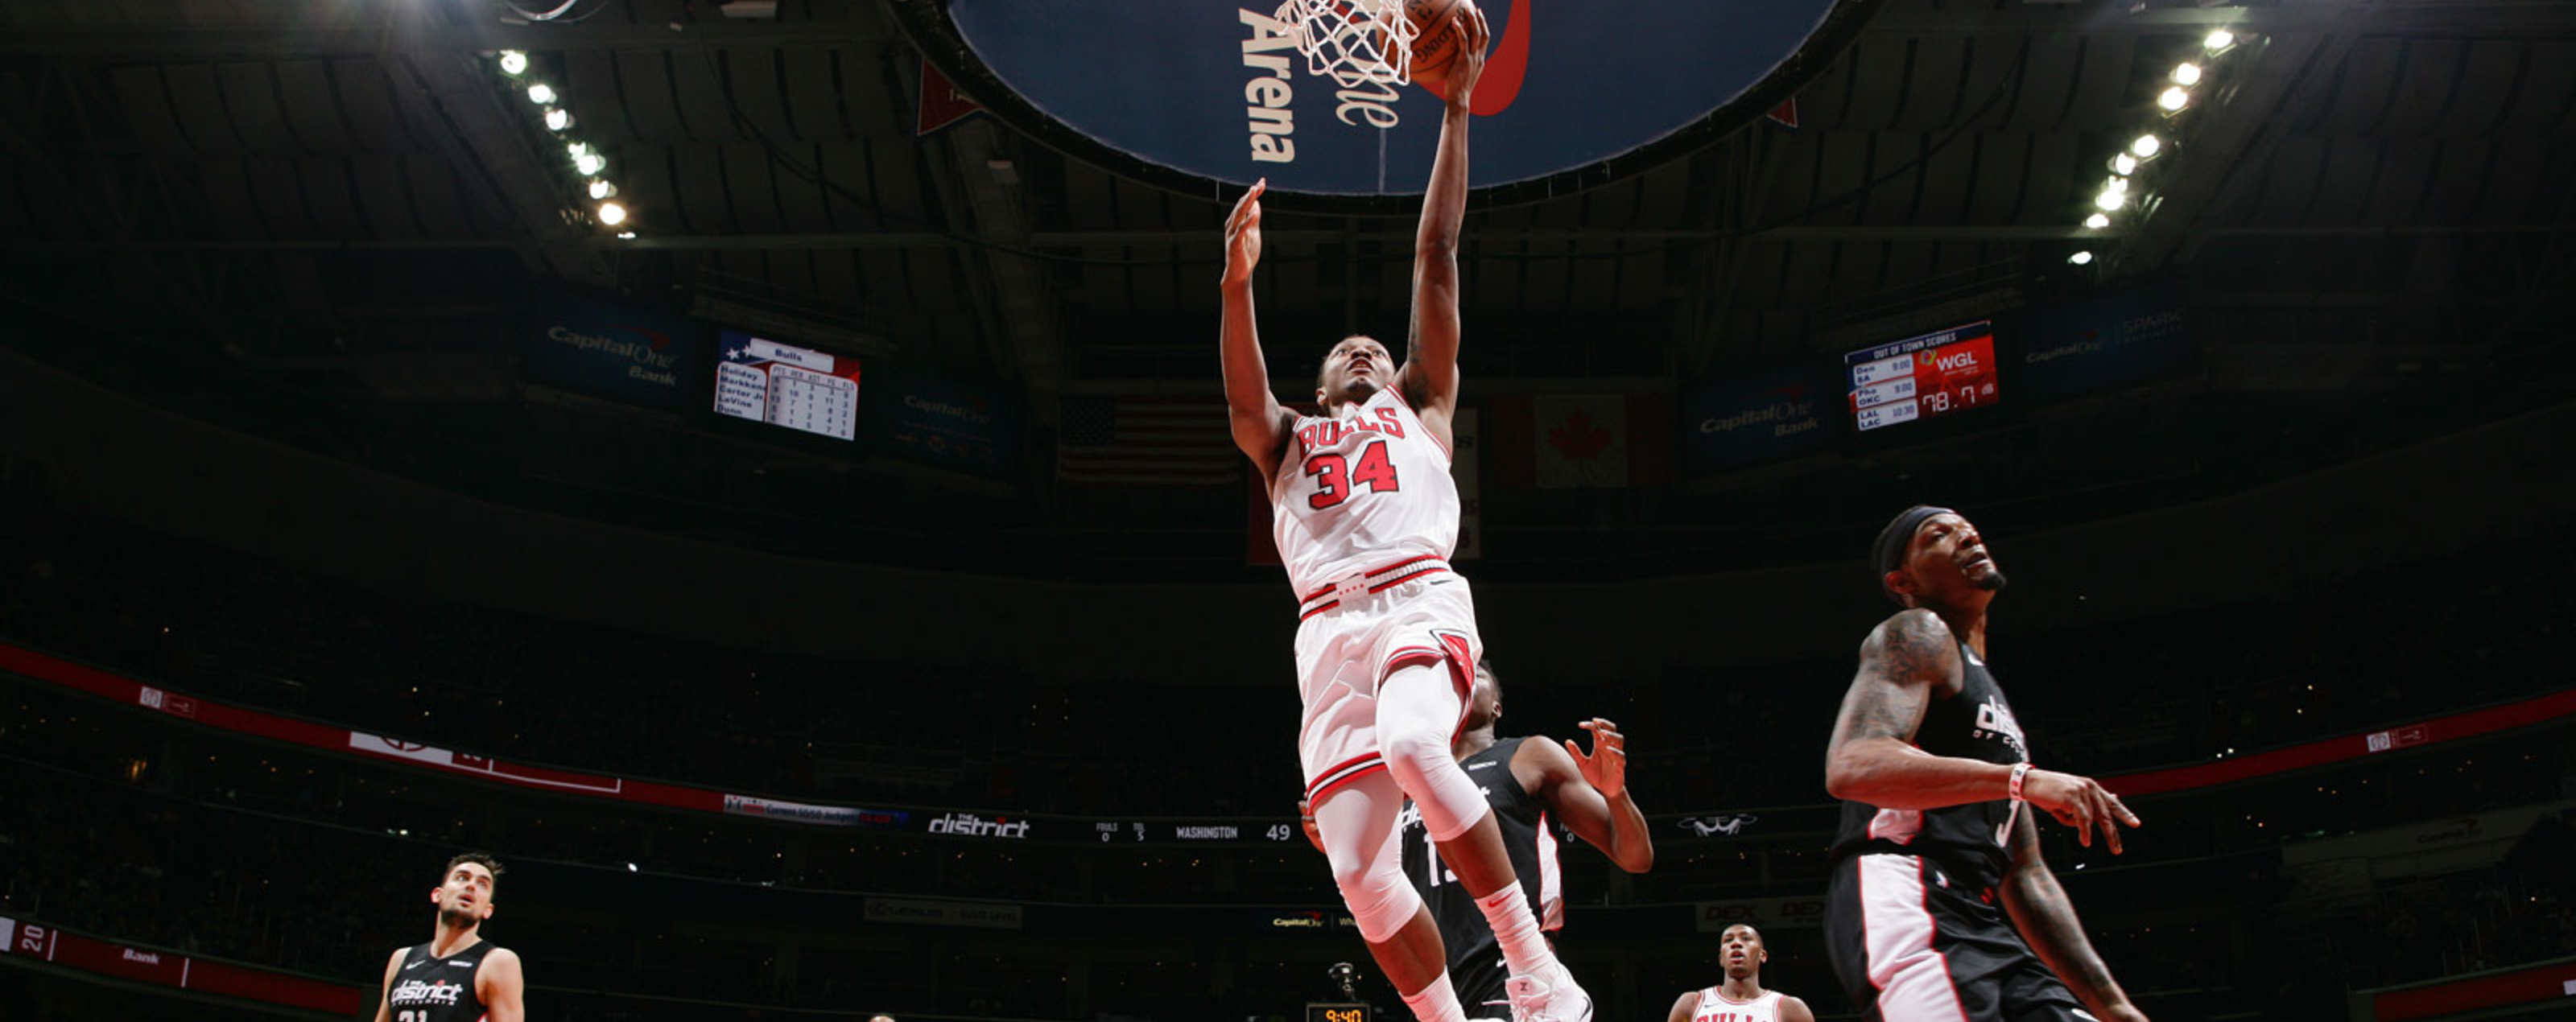 3437ff48186d Wendell Carter Jr.  34 of the Chicago Bulls shoots the ball against the  Washington